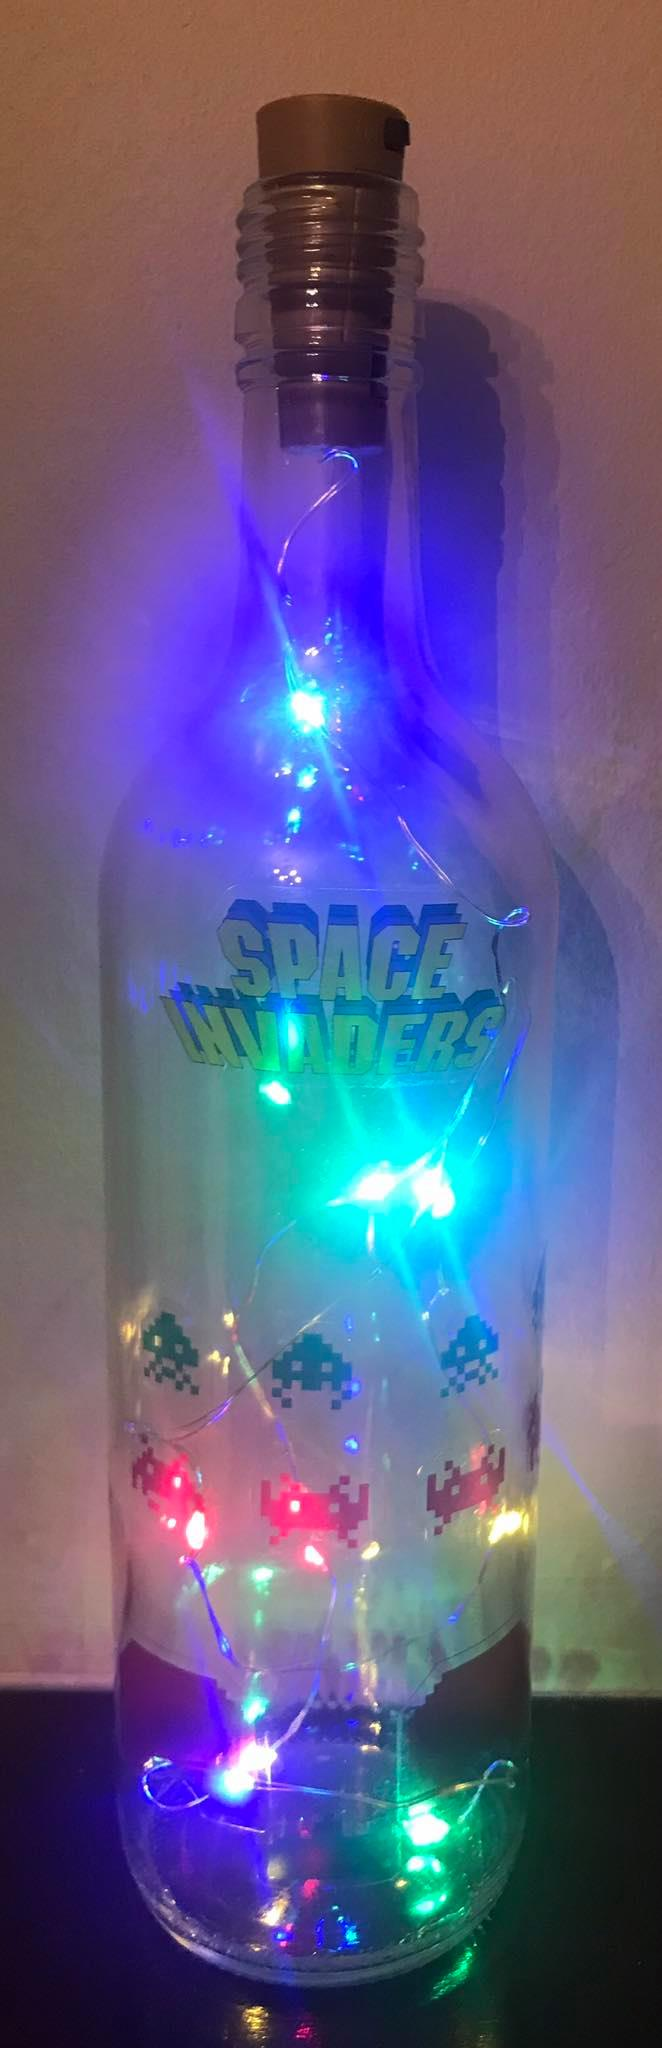 Space Invaders Light Up Bottle